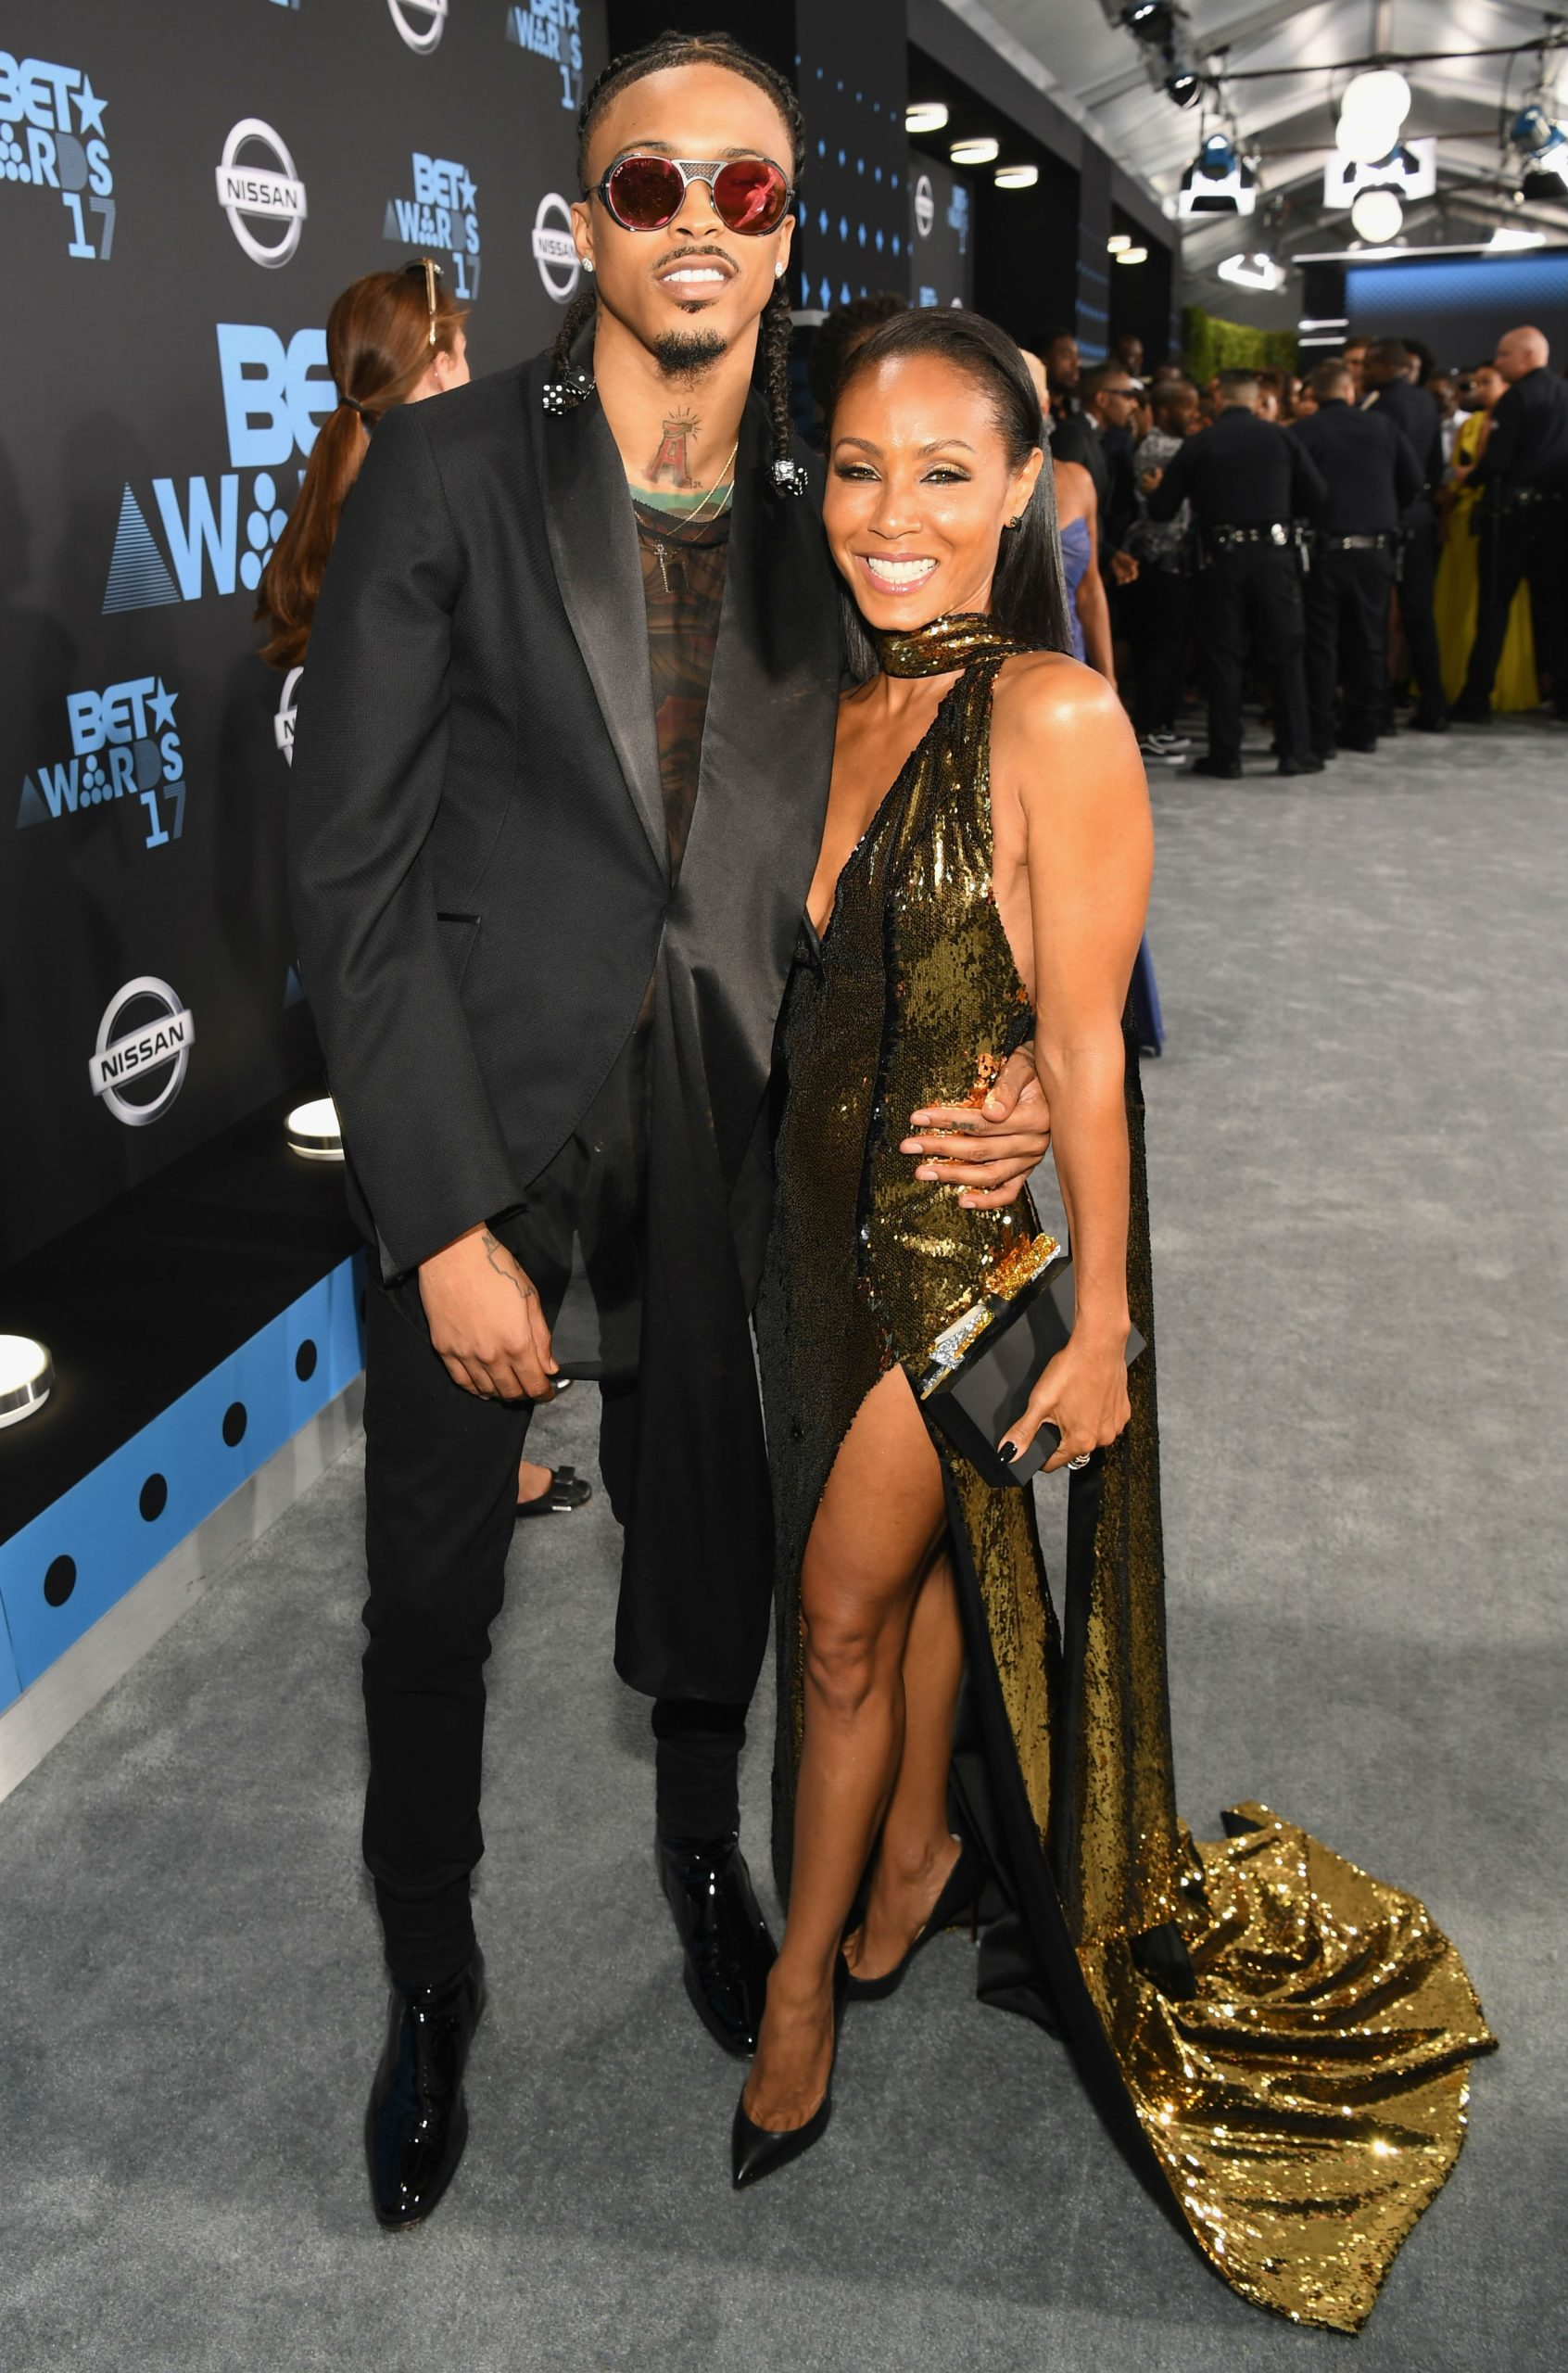 August Aslina Reveals His Secret Love Triangle With Will And Jada Pinkett Smith